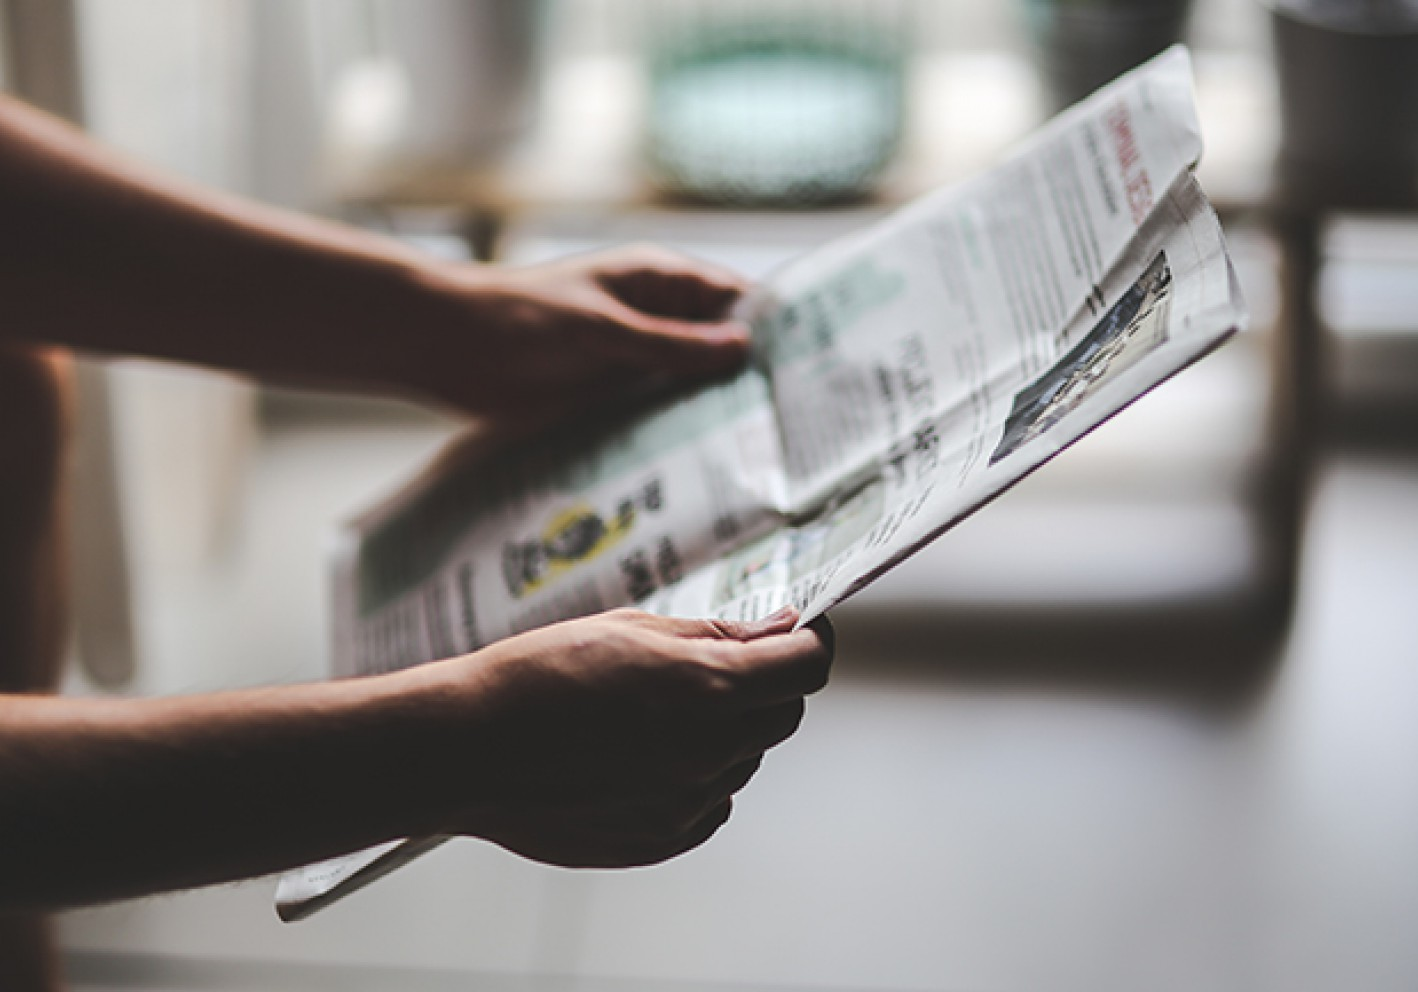 Newspaper in hands